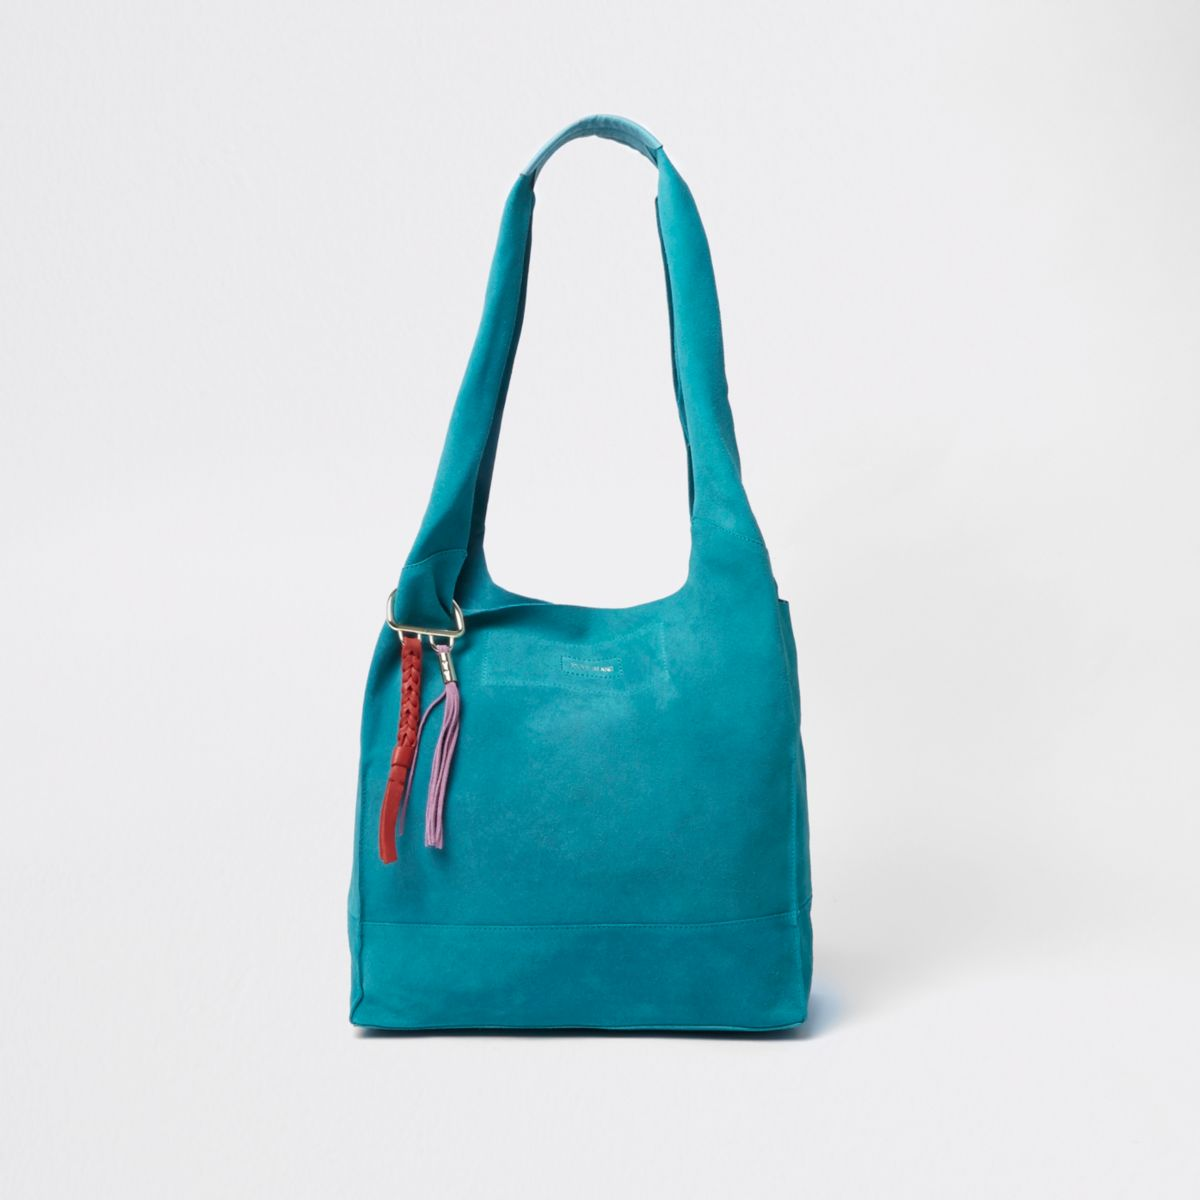 Teal blue suede slouch tote bag